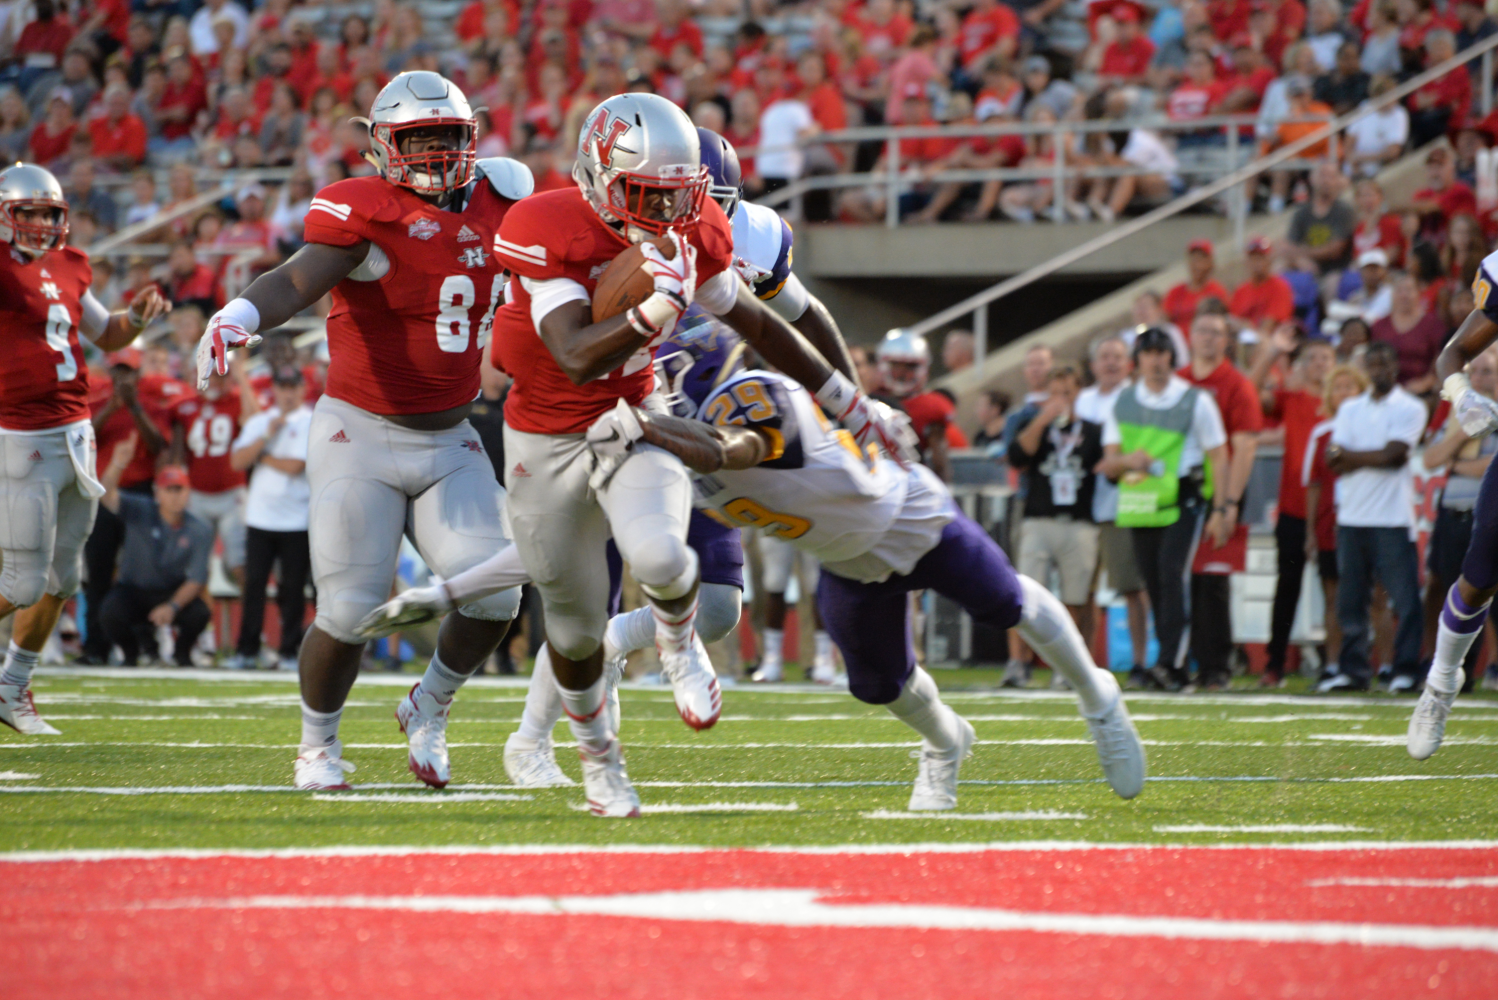 #22 Jeremy Rounds blocks Prairie View's #29 Raleigh Johnson for Nicholls State Vs. Prairie View A&M on September 16, 2017.